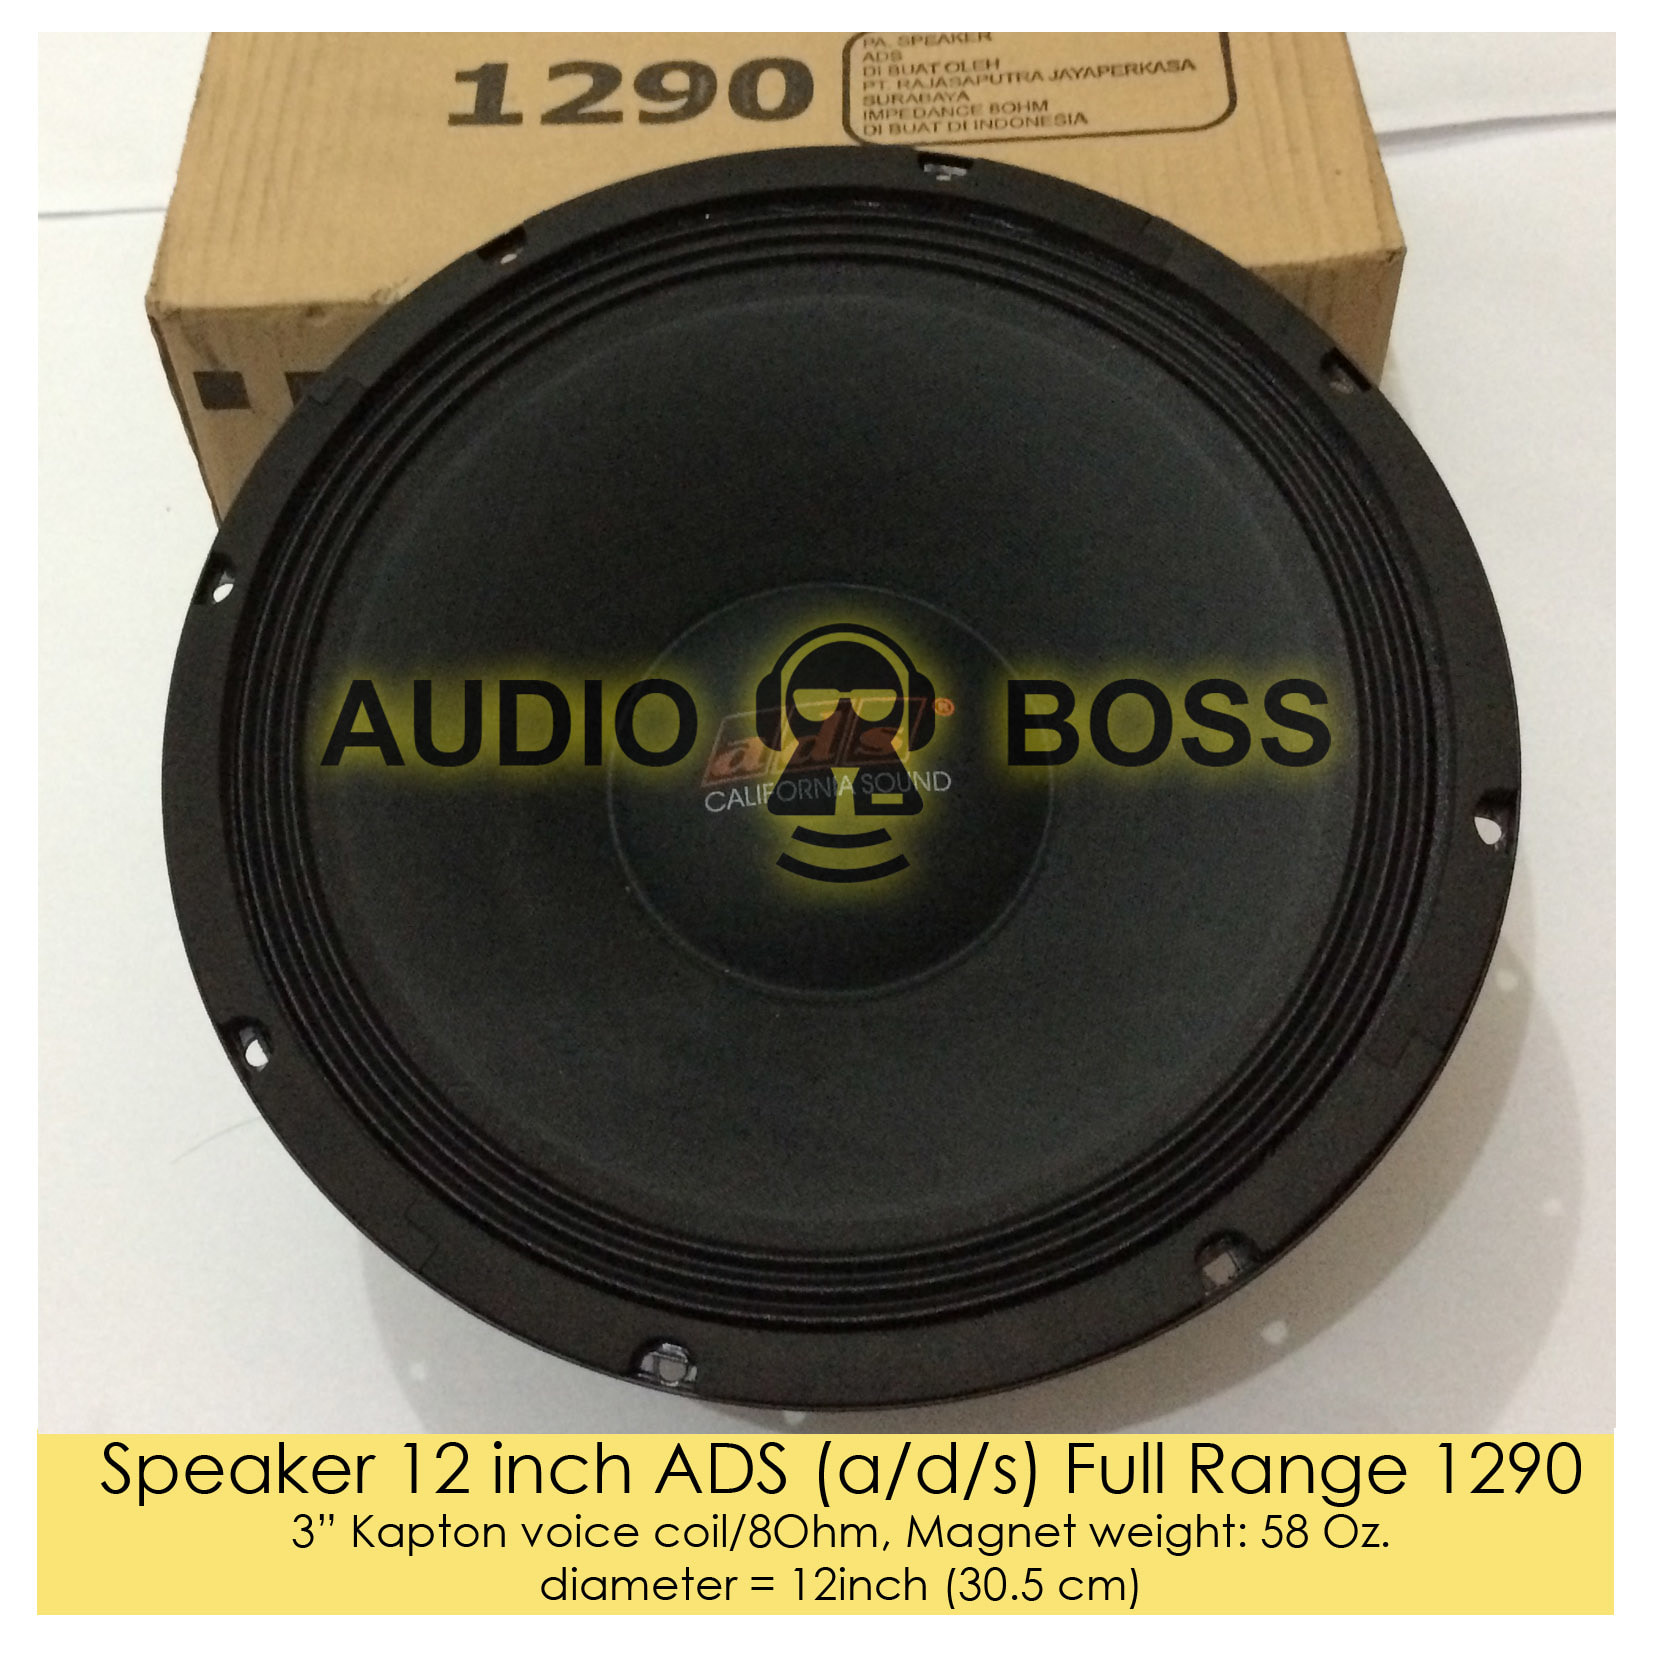 Jual Speaker Ads Full Range 12 Inch 1290 Audio Boss Tokopedia